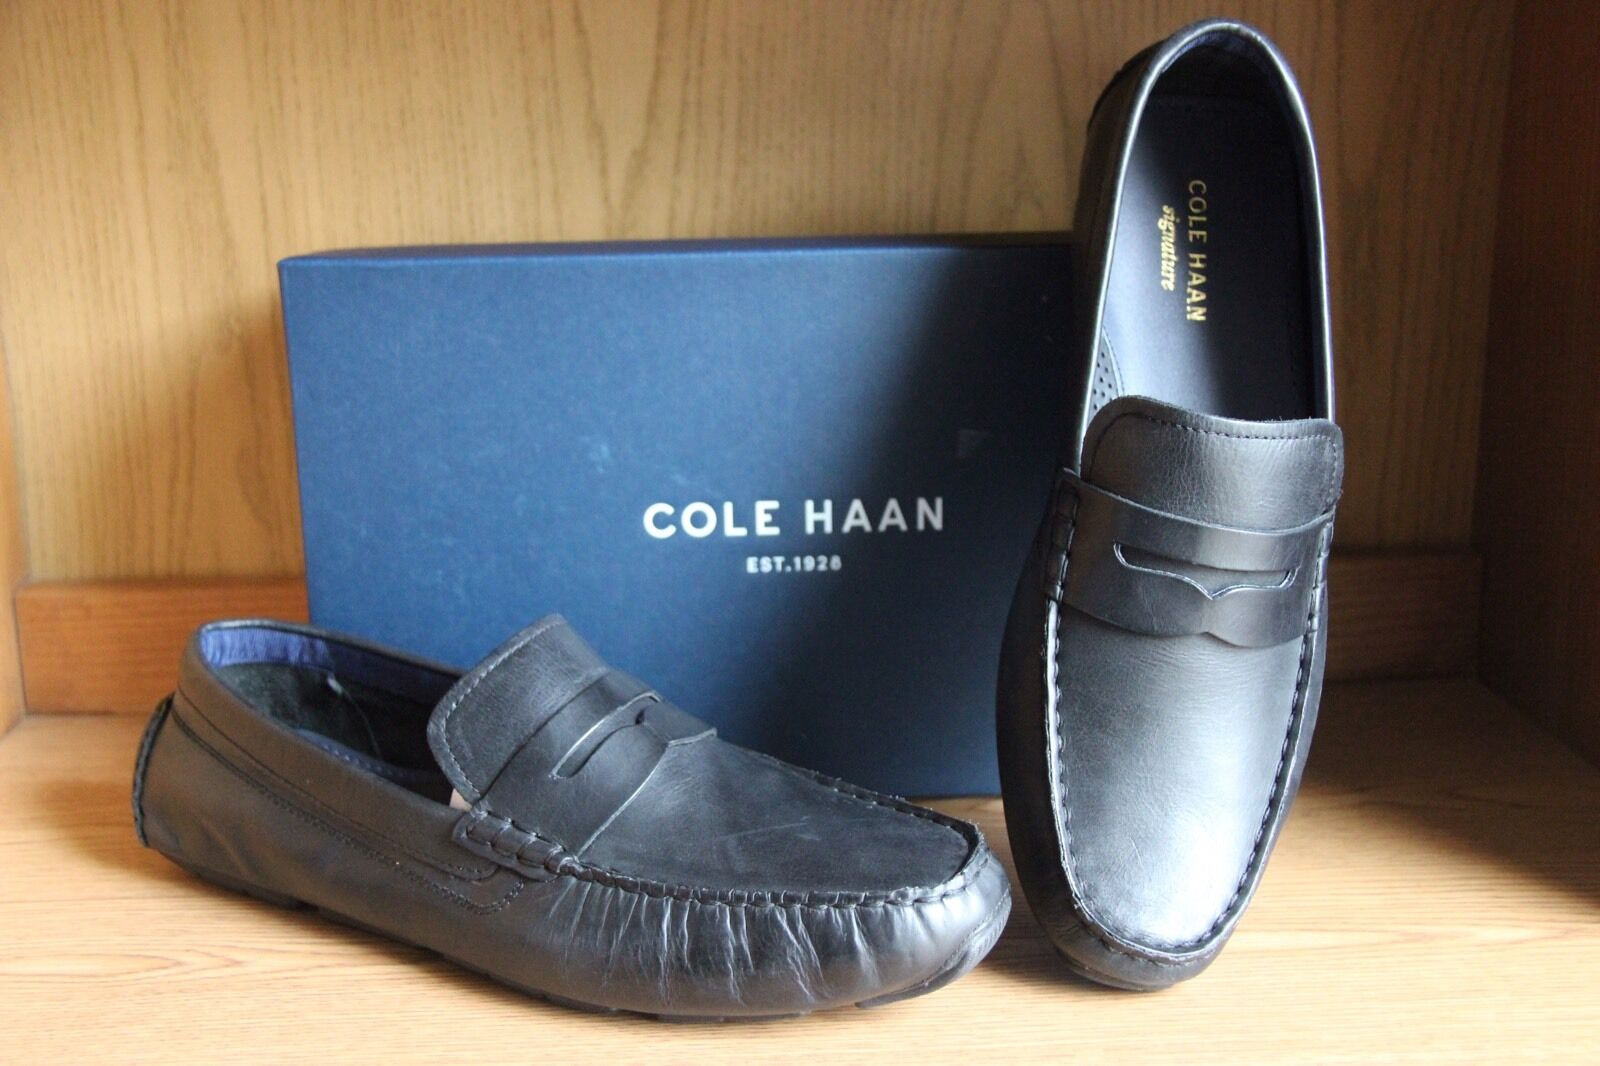 Cole Haan Kelson Penny Penny Penny Loafer scarpe nero Uomo Dimensione 12  C22443 a90730